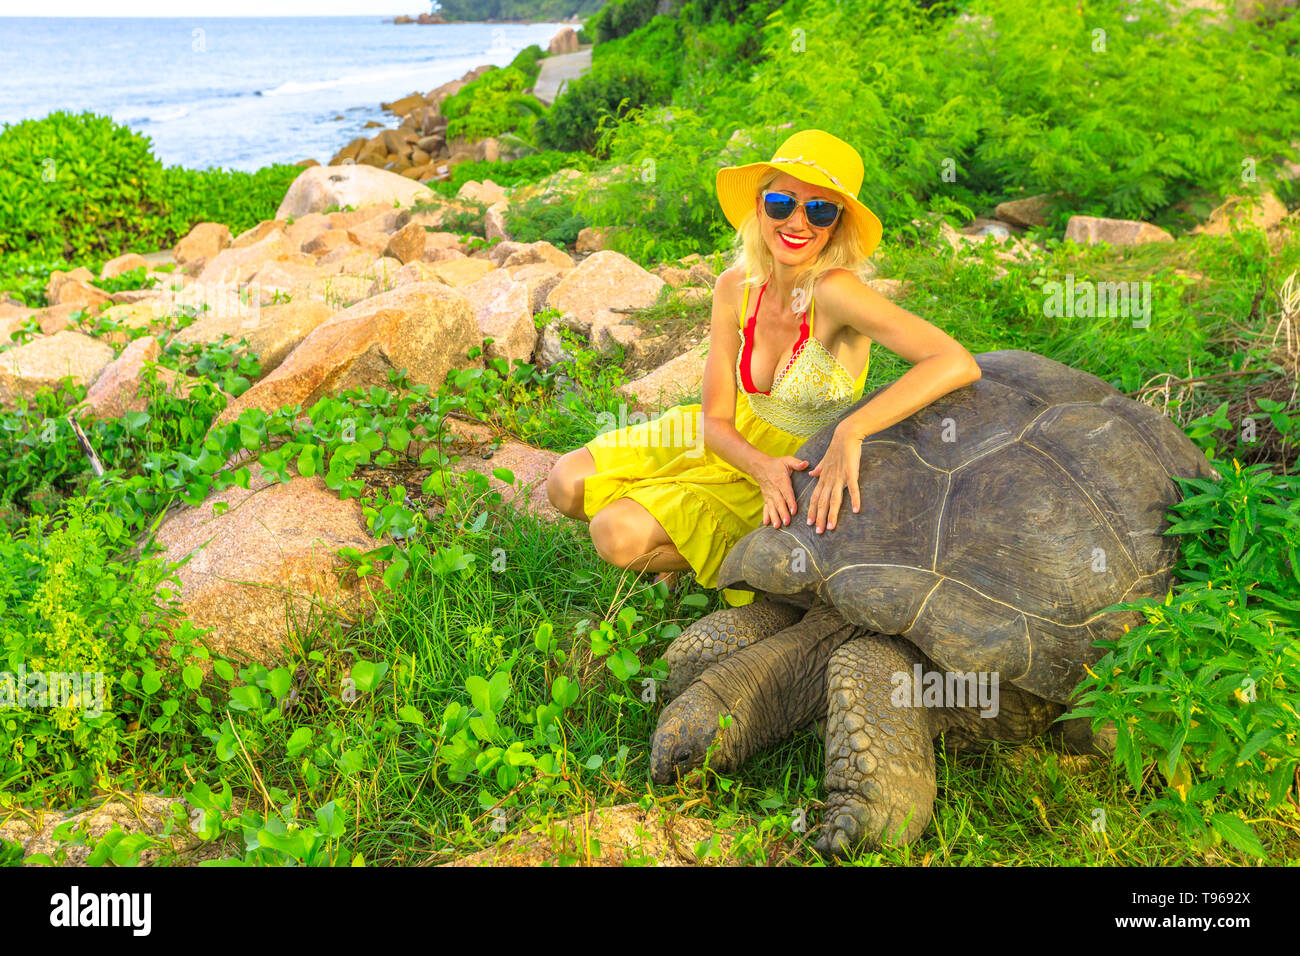 Elegant lifestyle tourist woman with sunhat touches and interacts with Aldabra Giant Tortoise, Aldabrachelys gigantea, in nature with sea background - Stock Image